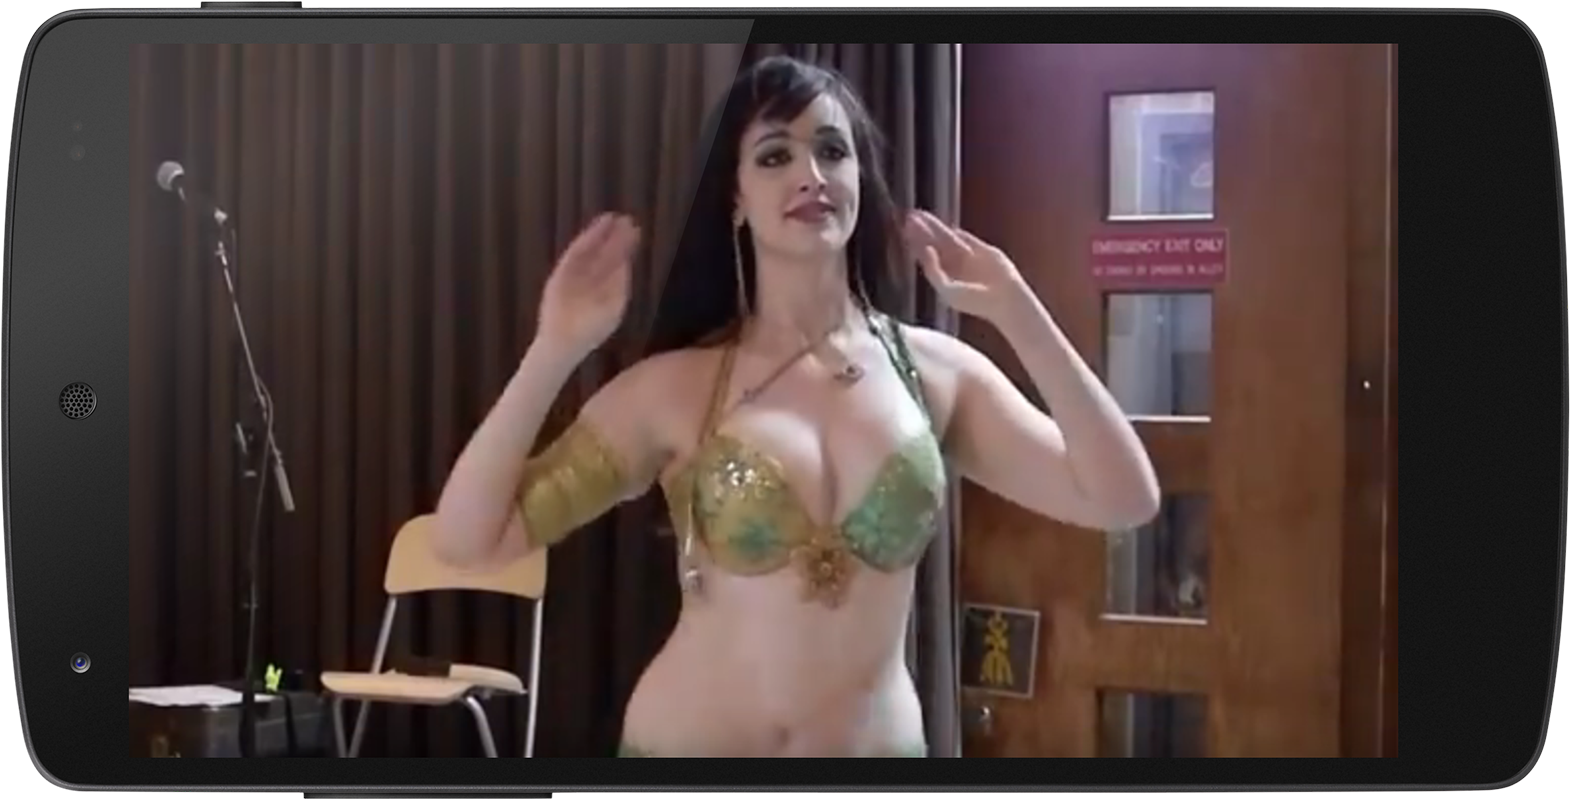 Sexy Video Of Belly Dance 40 Apk Download - Android -3062